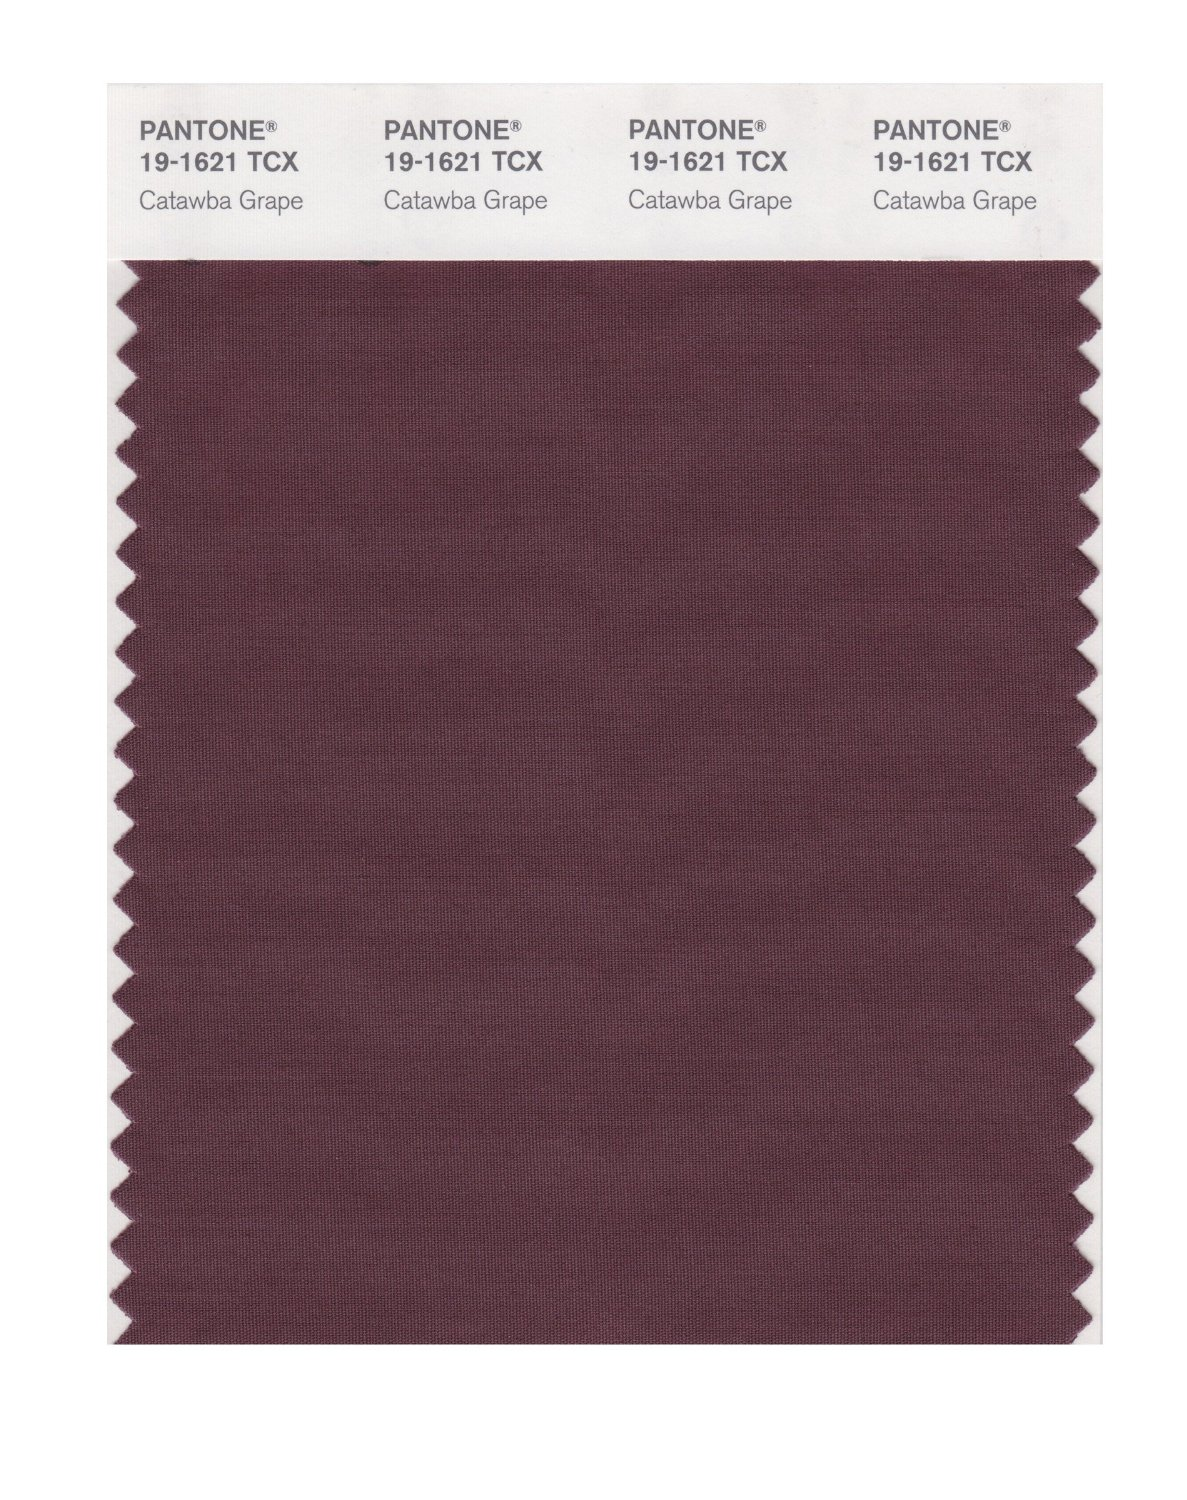 Pantone Smart Swatch 19-1621 Catawba Grape